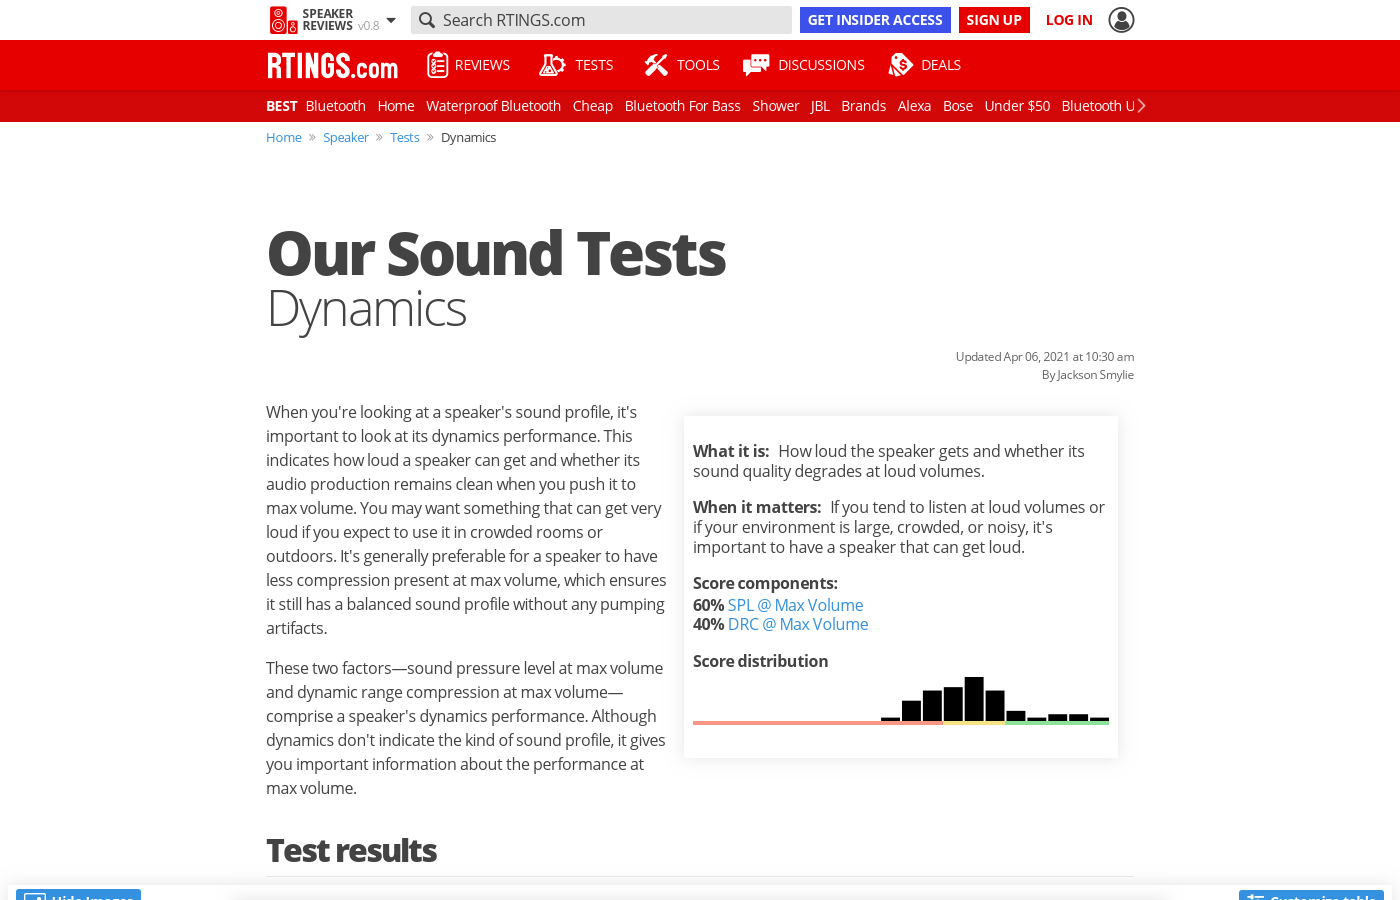 Our Sound Tests: Dynamics